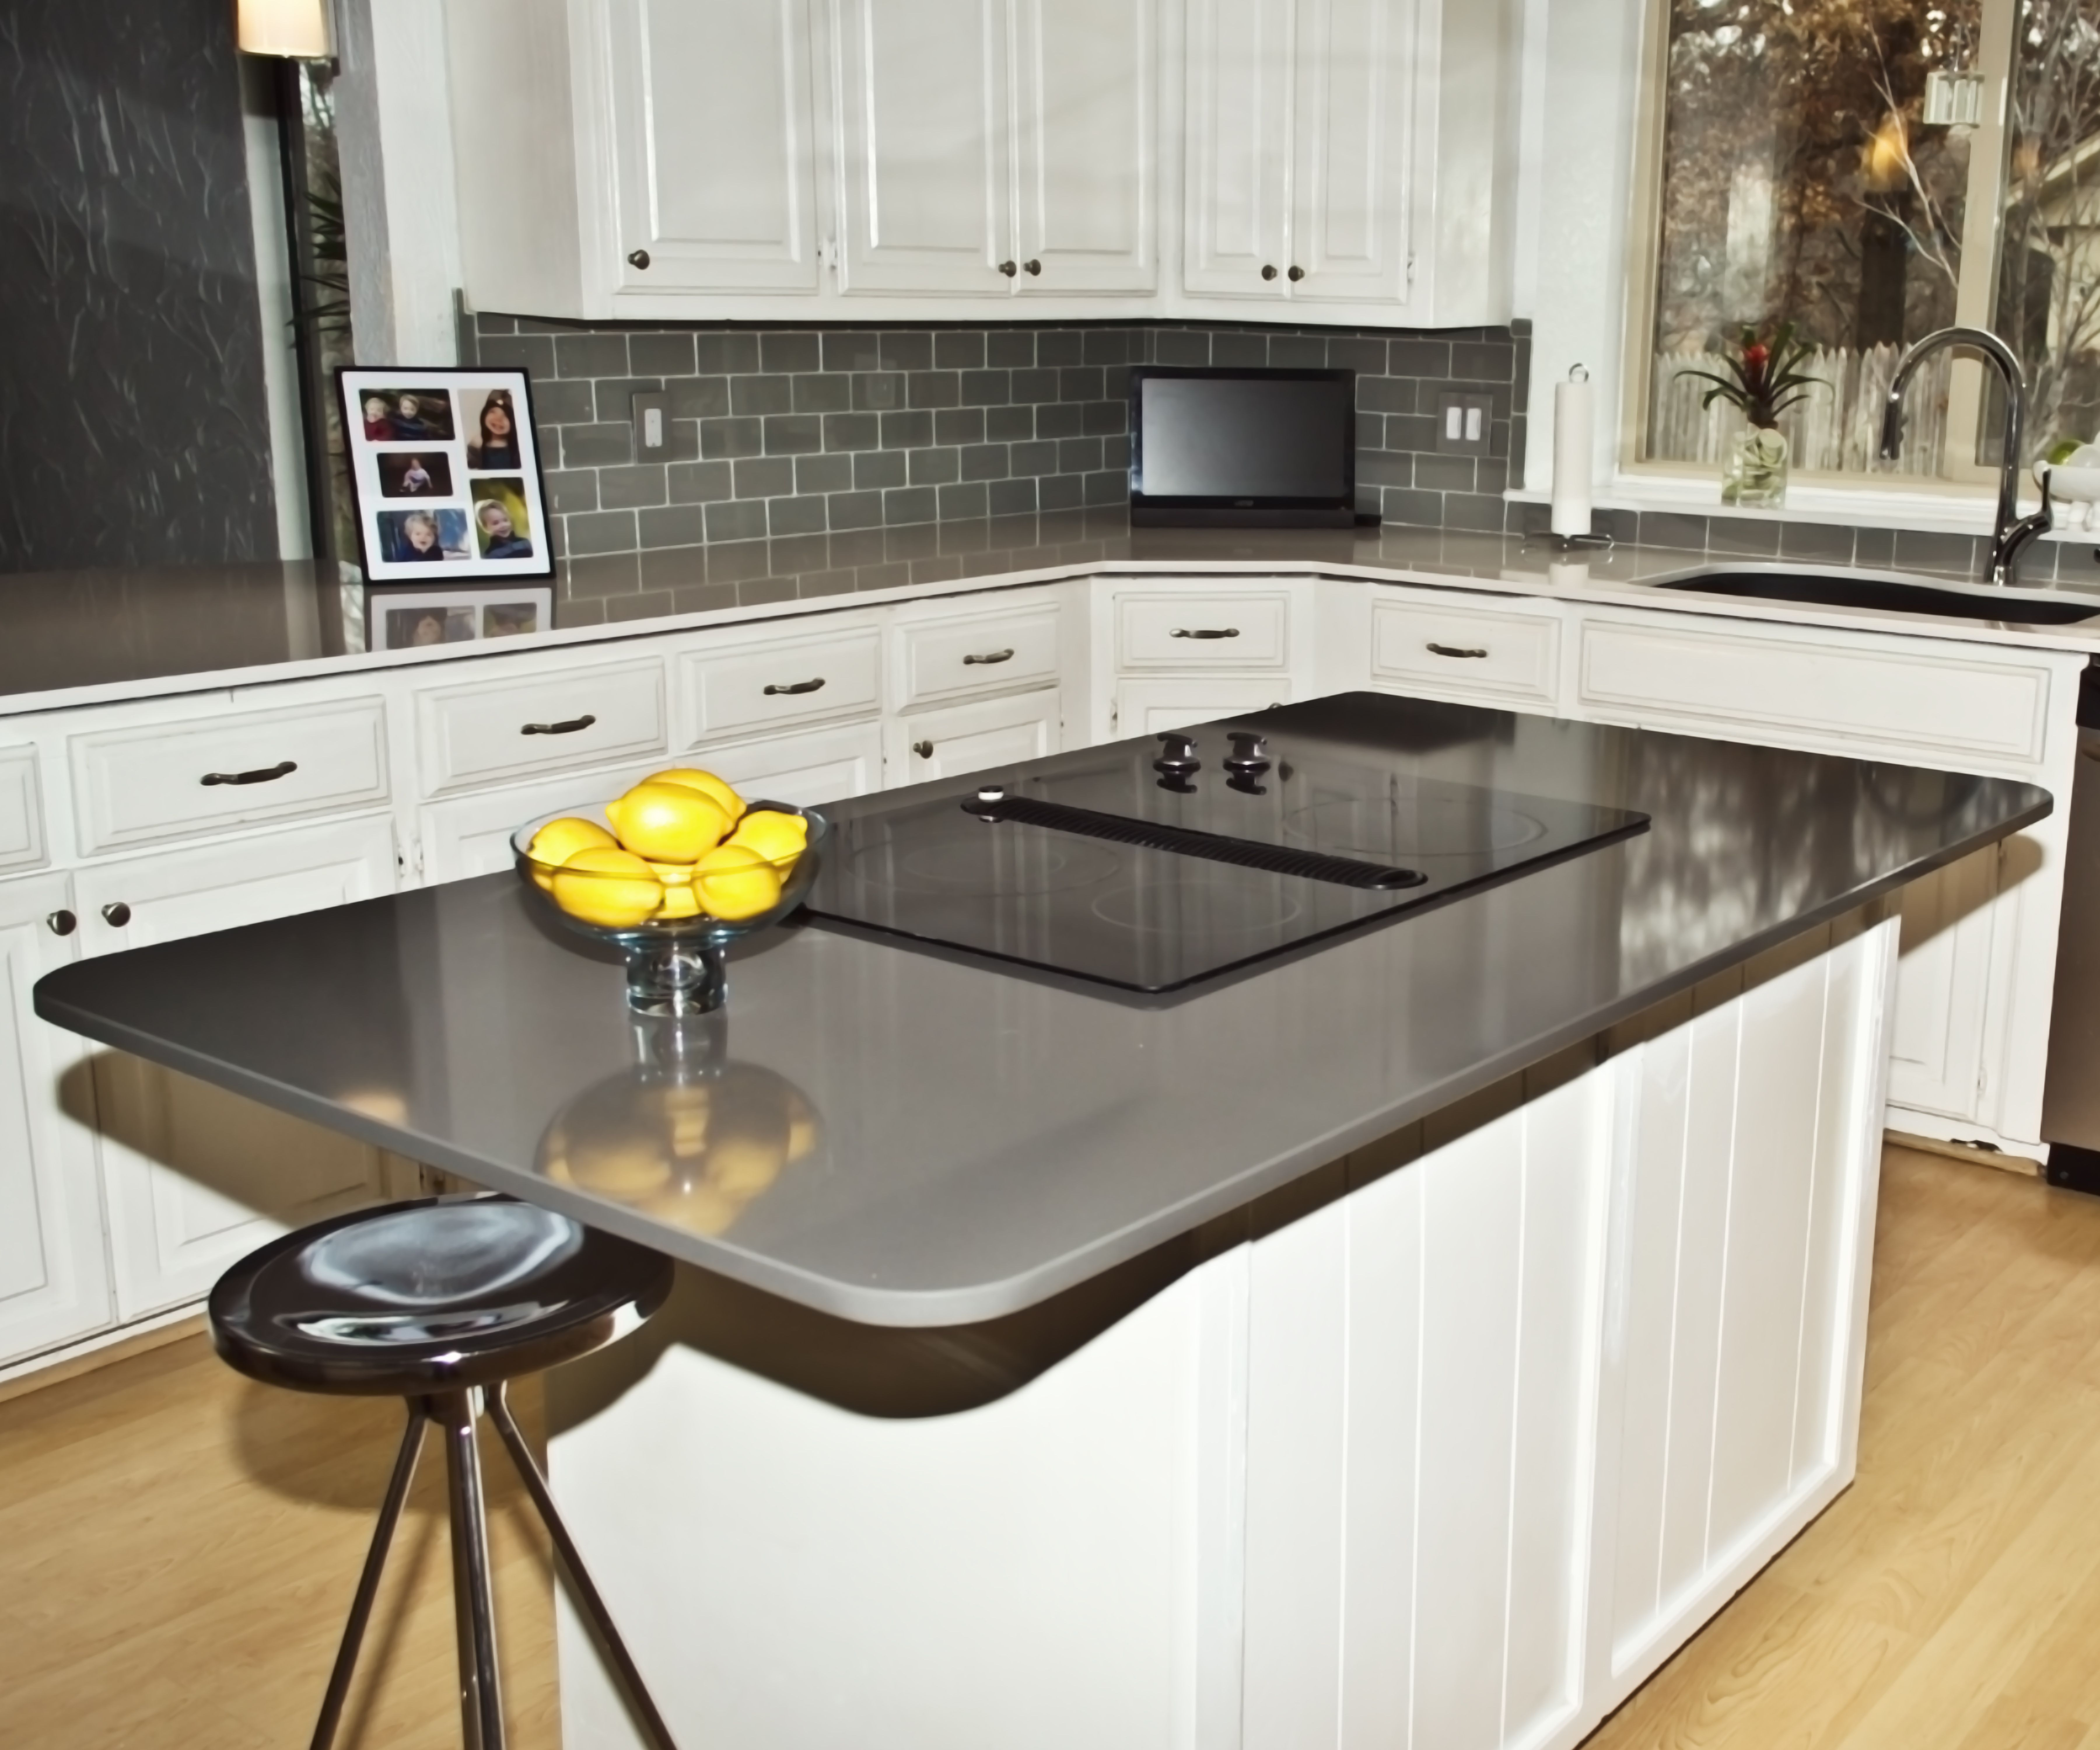 Silestone Quartz Countertops For Kitchens : Island countertop silestone cemento install photos